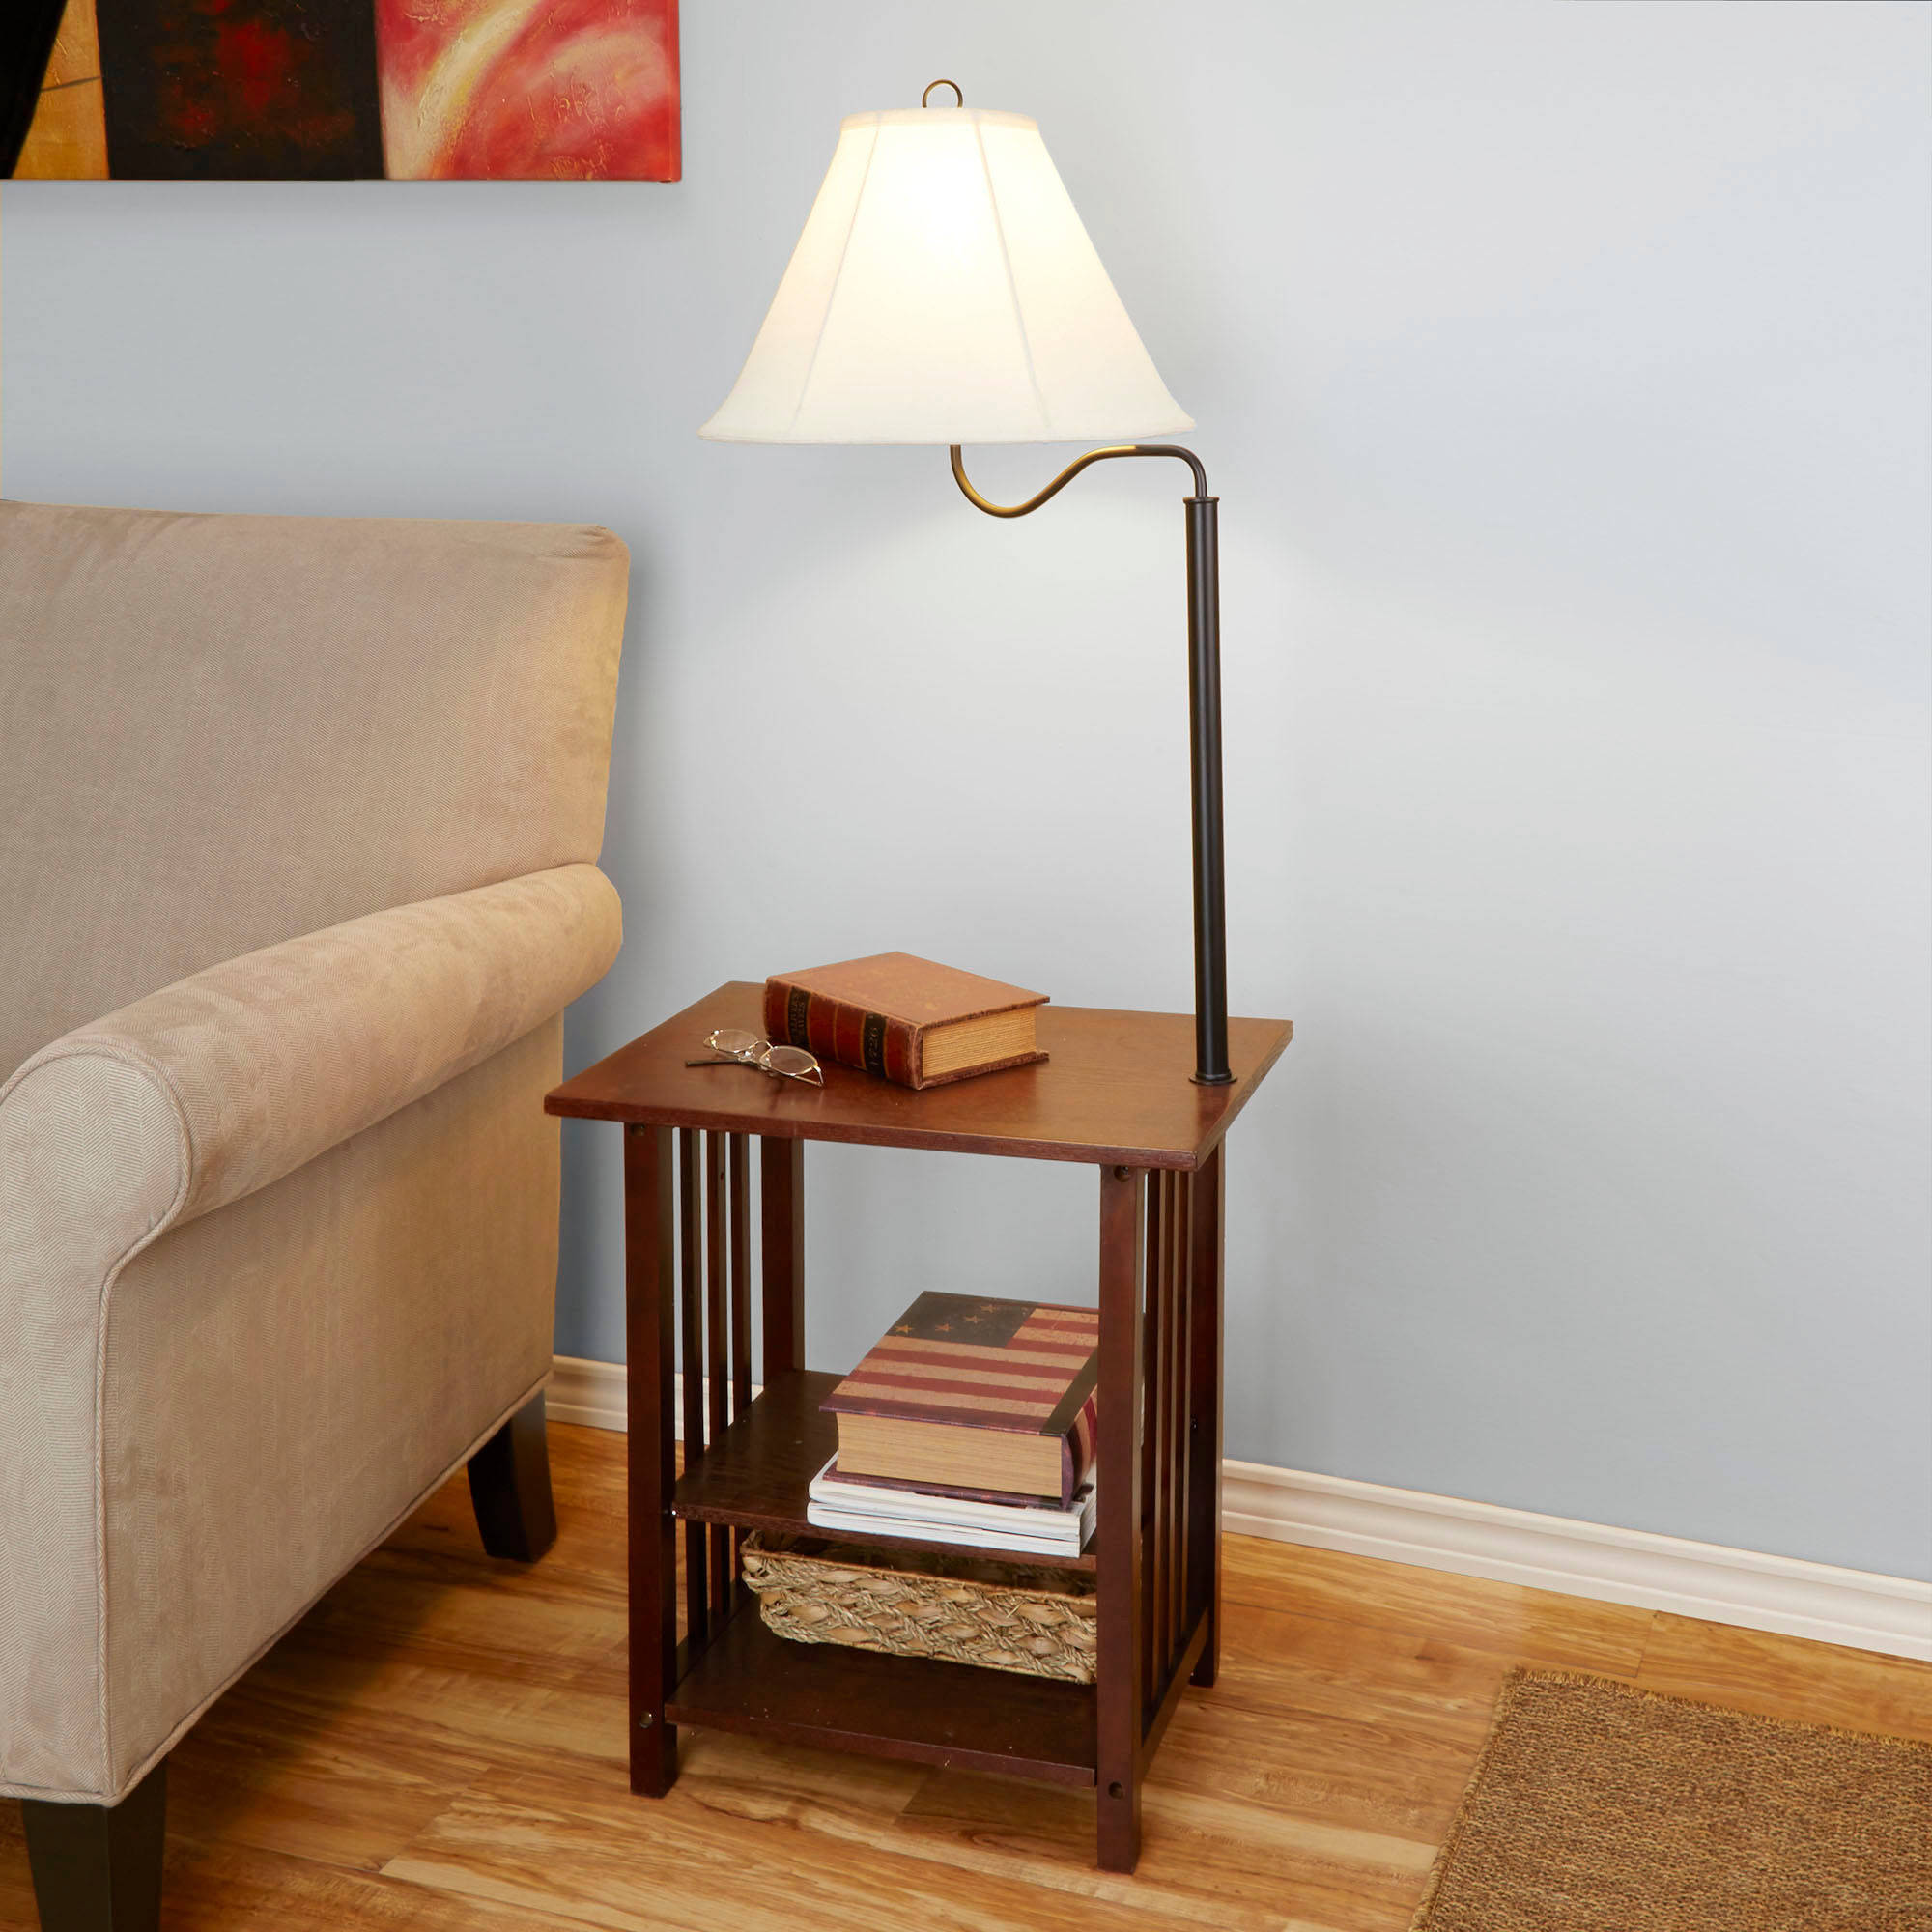 end table with built lamp signquantumcontinuum tables designs lamps mercury combo living room couch red round accent best for bedroom dog cage made wood odd shaped garage storage